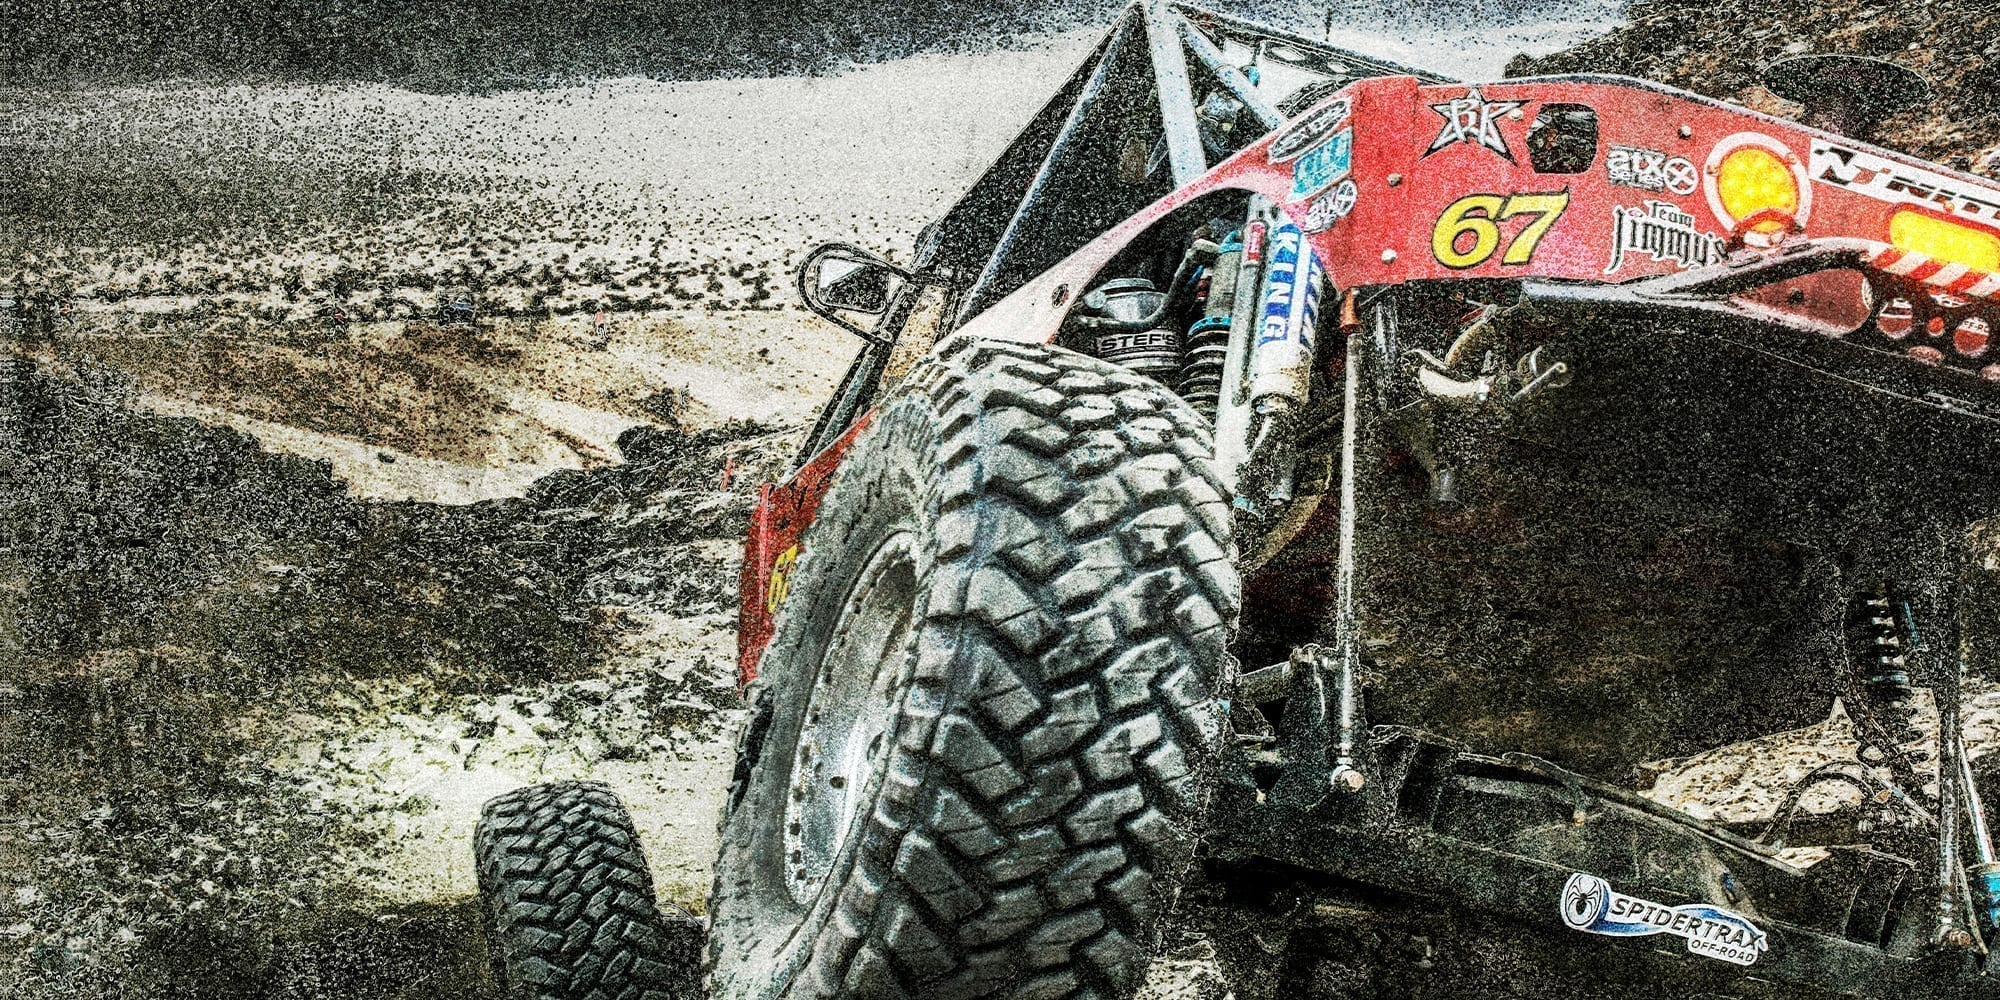 Arizona Off Road Expo and Sand Sports Show